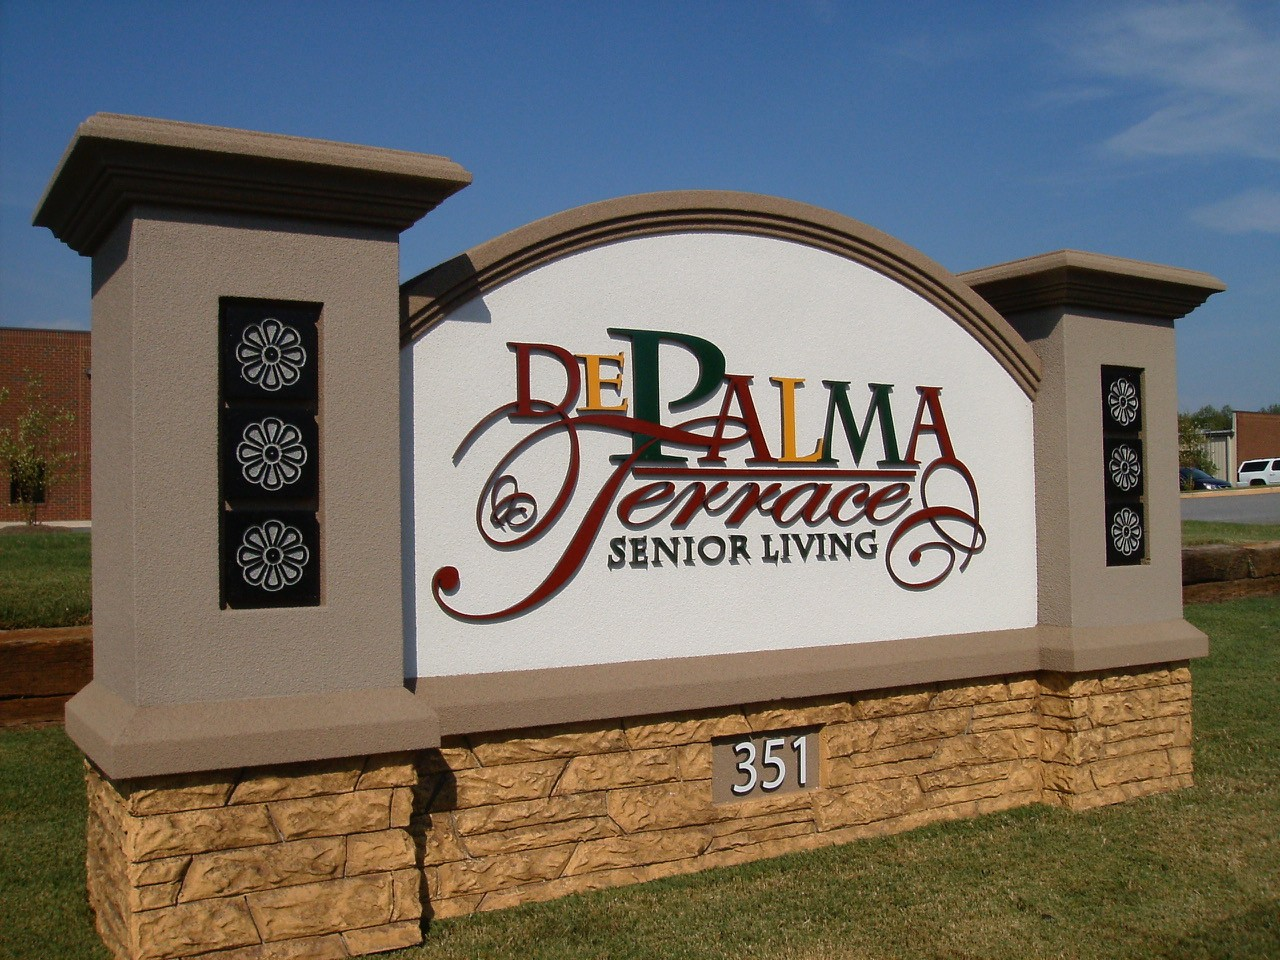 De Palma Terrace Senior Living Community Sign Monument